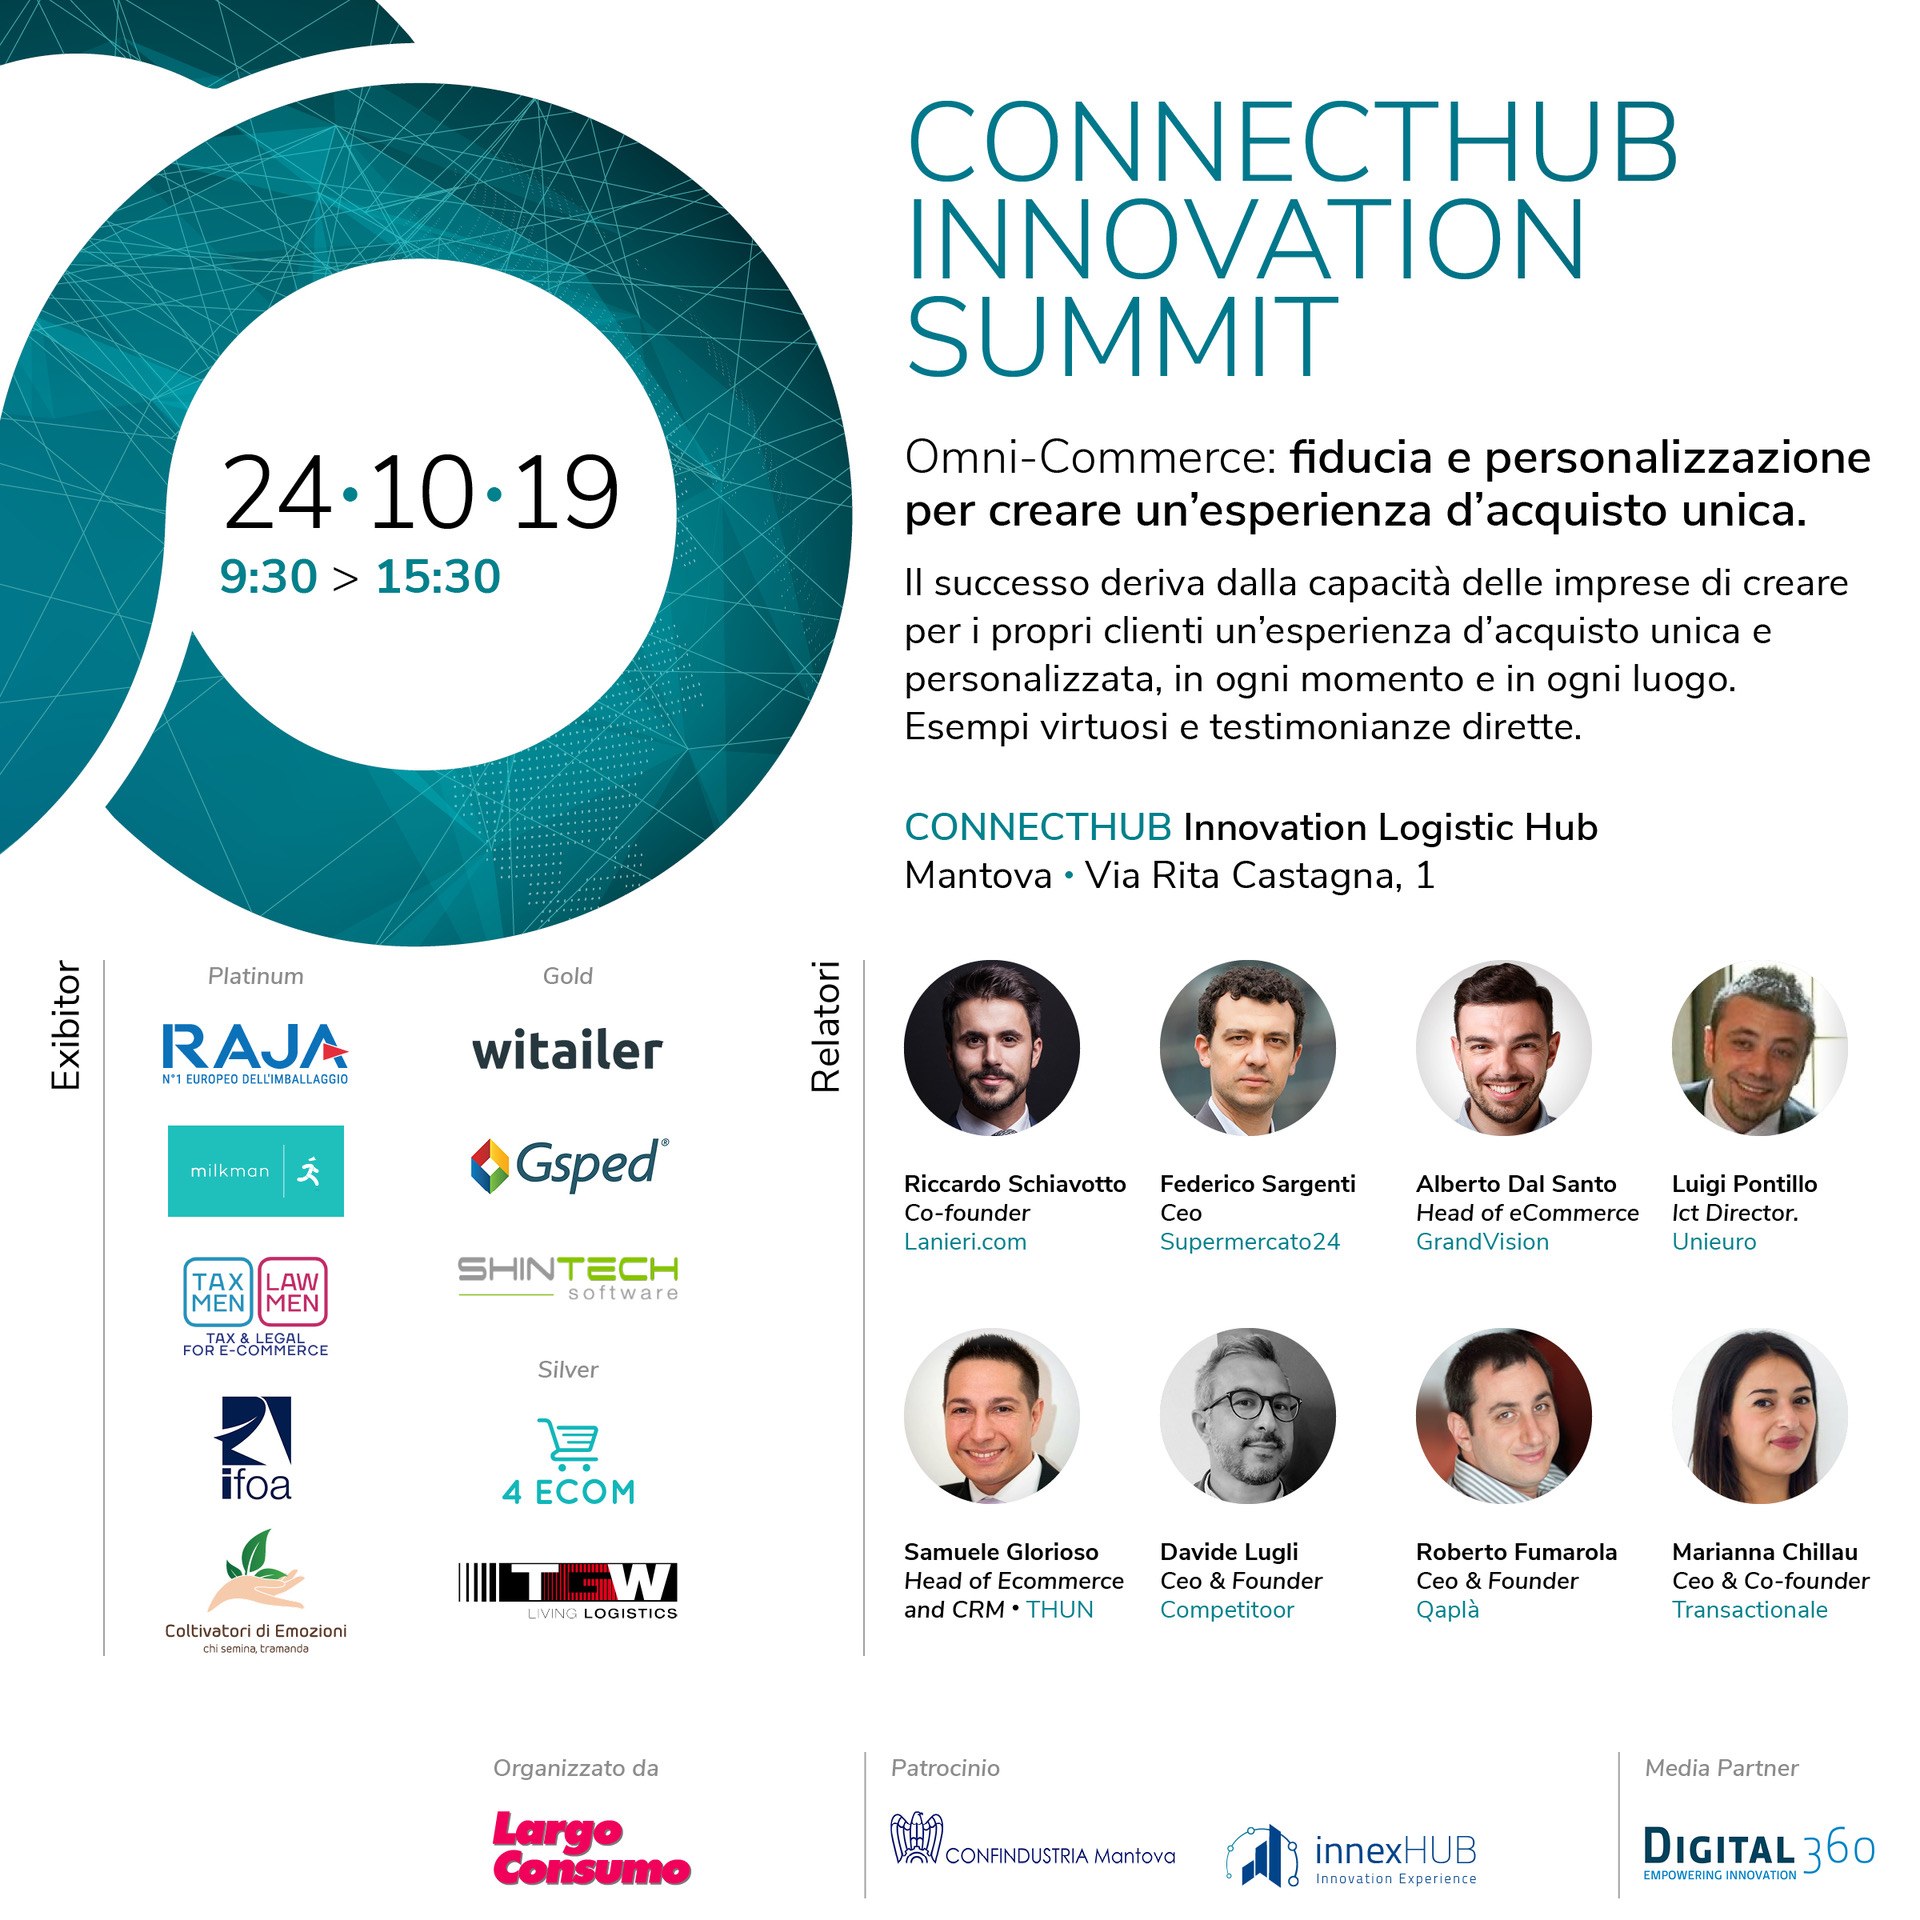 Connecthub Innovation Summit 2019